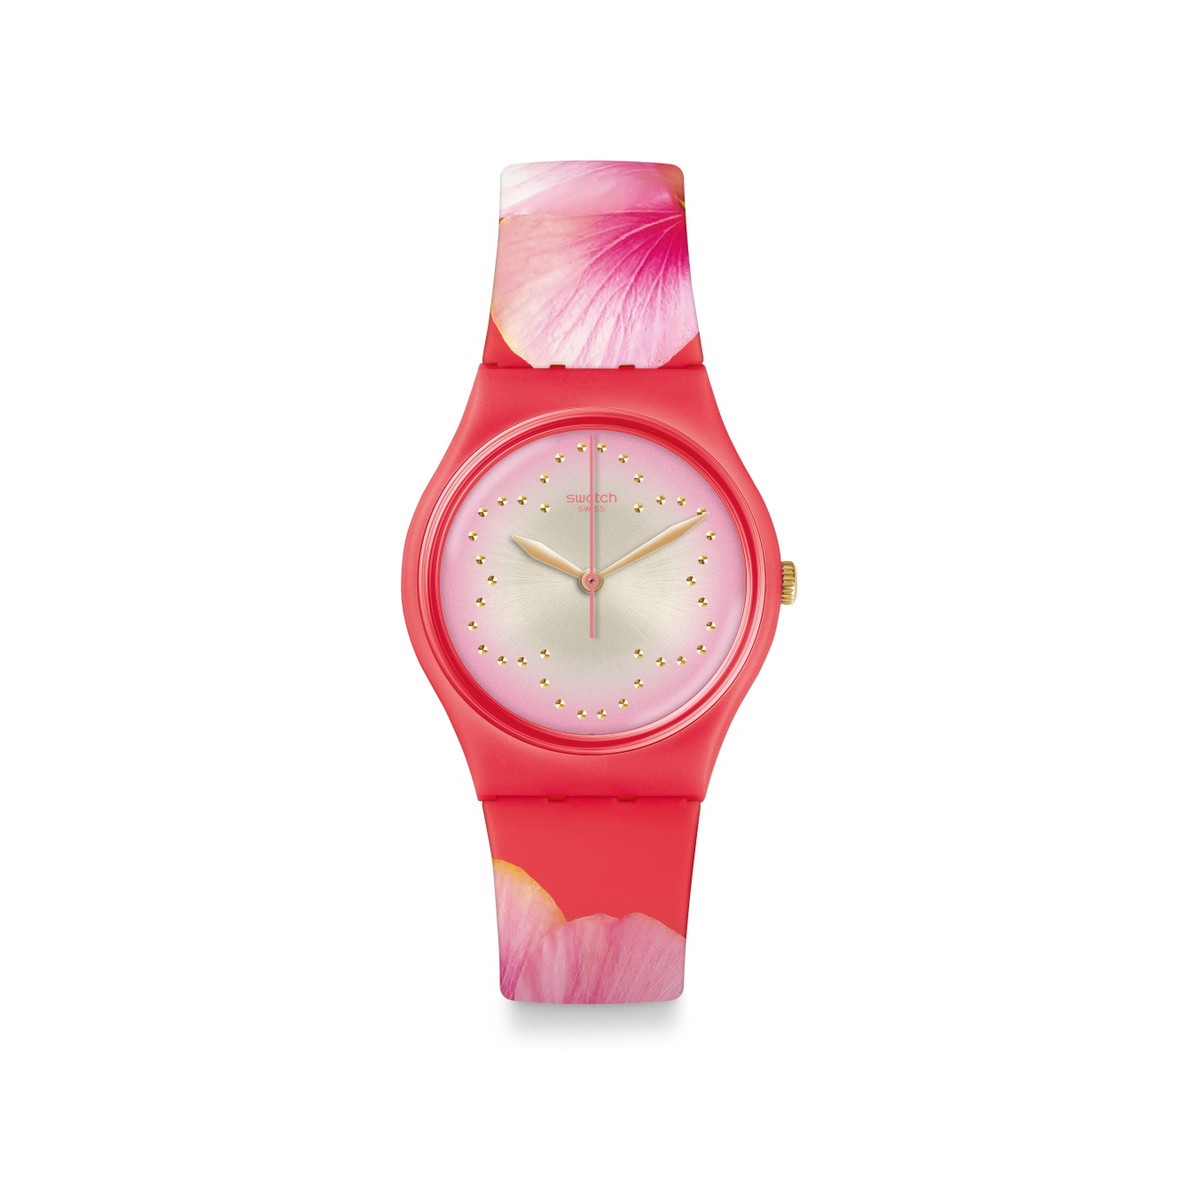 Montre Swatch mixte silicone rose - vue V1